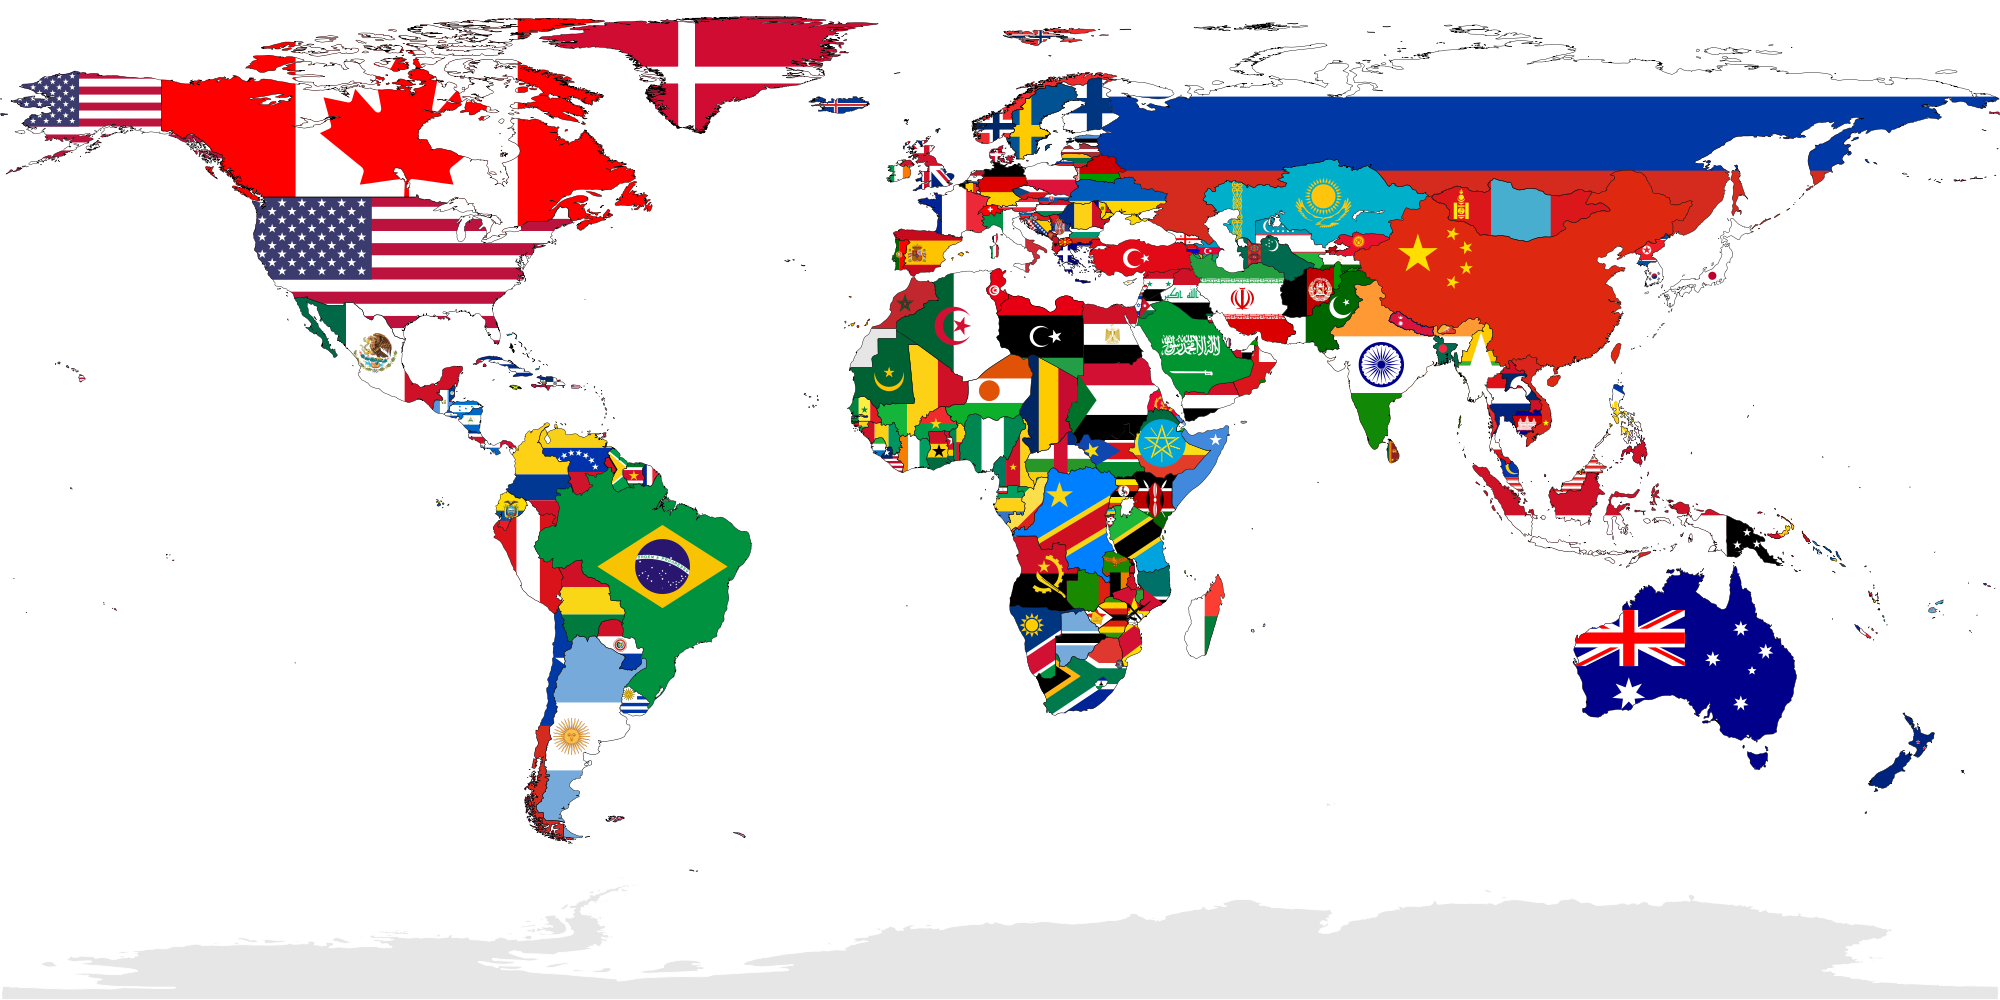 map of the world showing flags